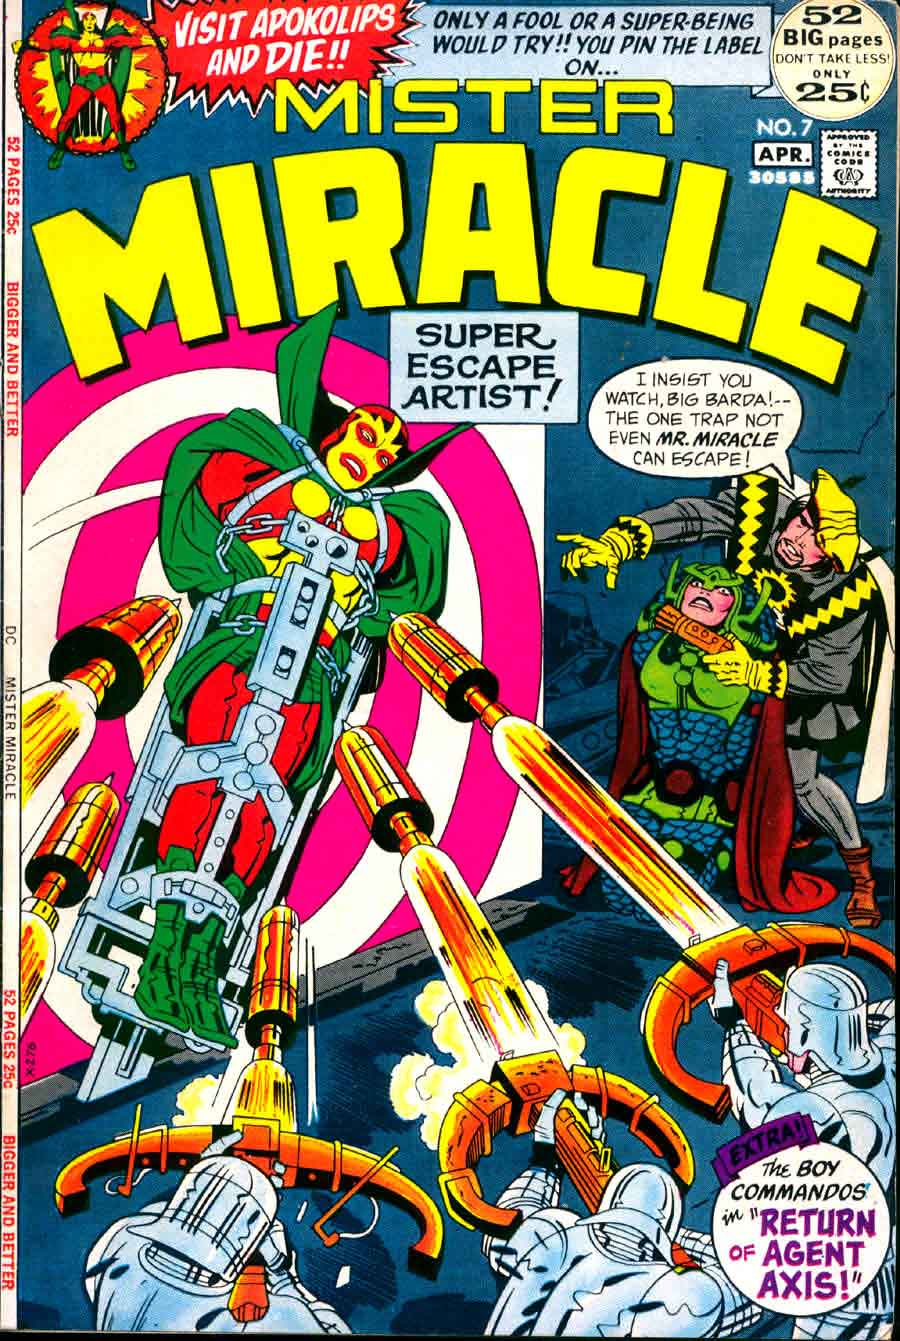 Mister Miracle v1 #7 dc 1970s bronze age comic book cover art by Jack Kirby